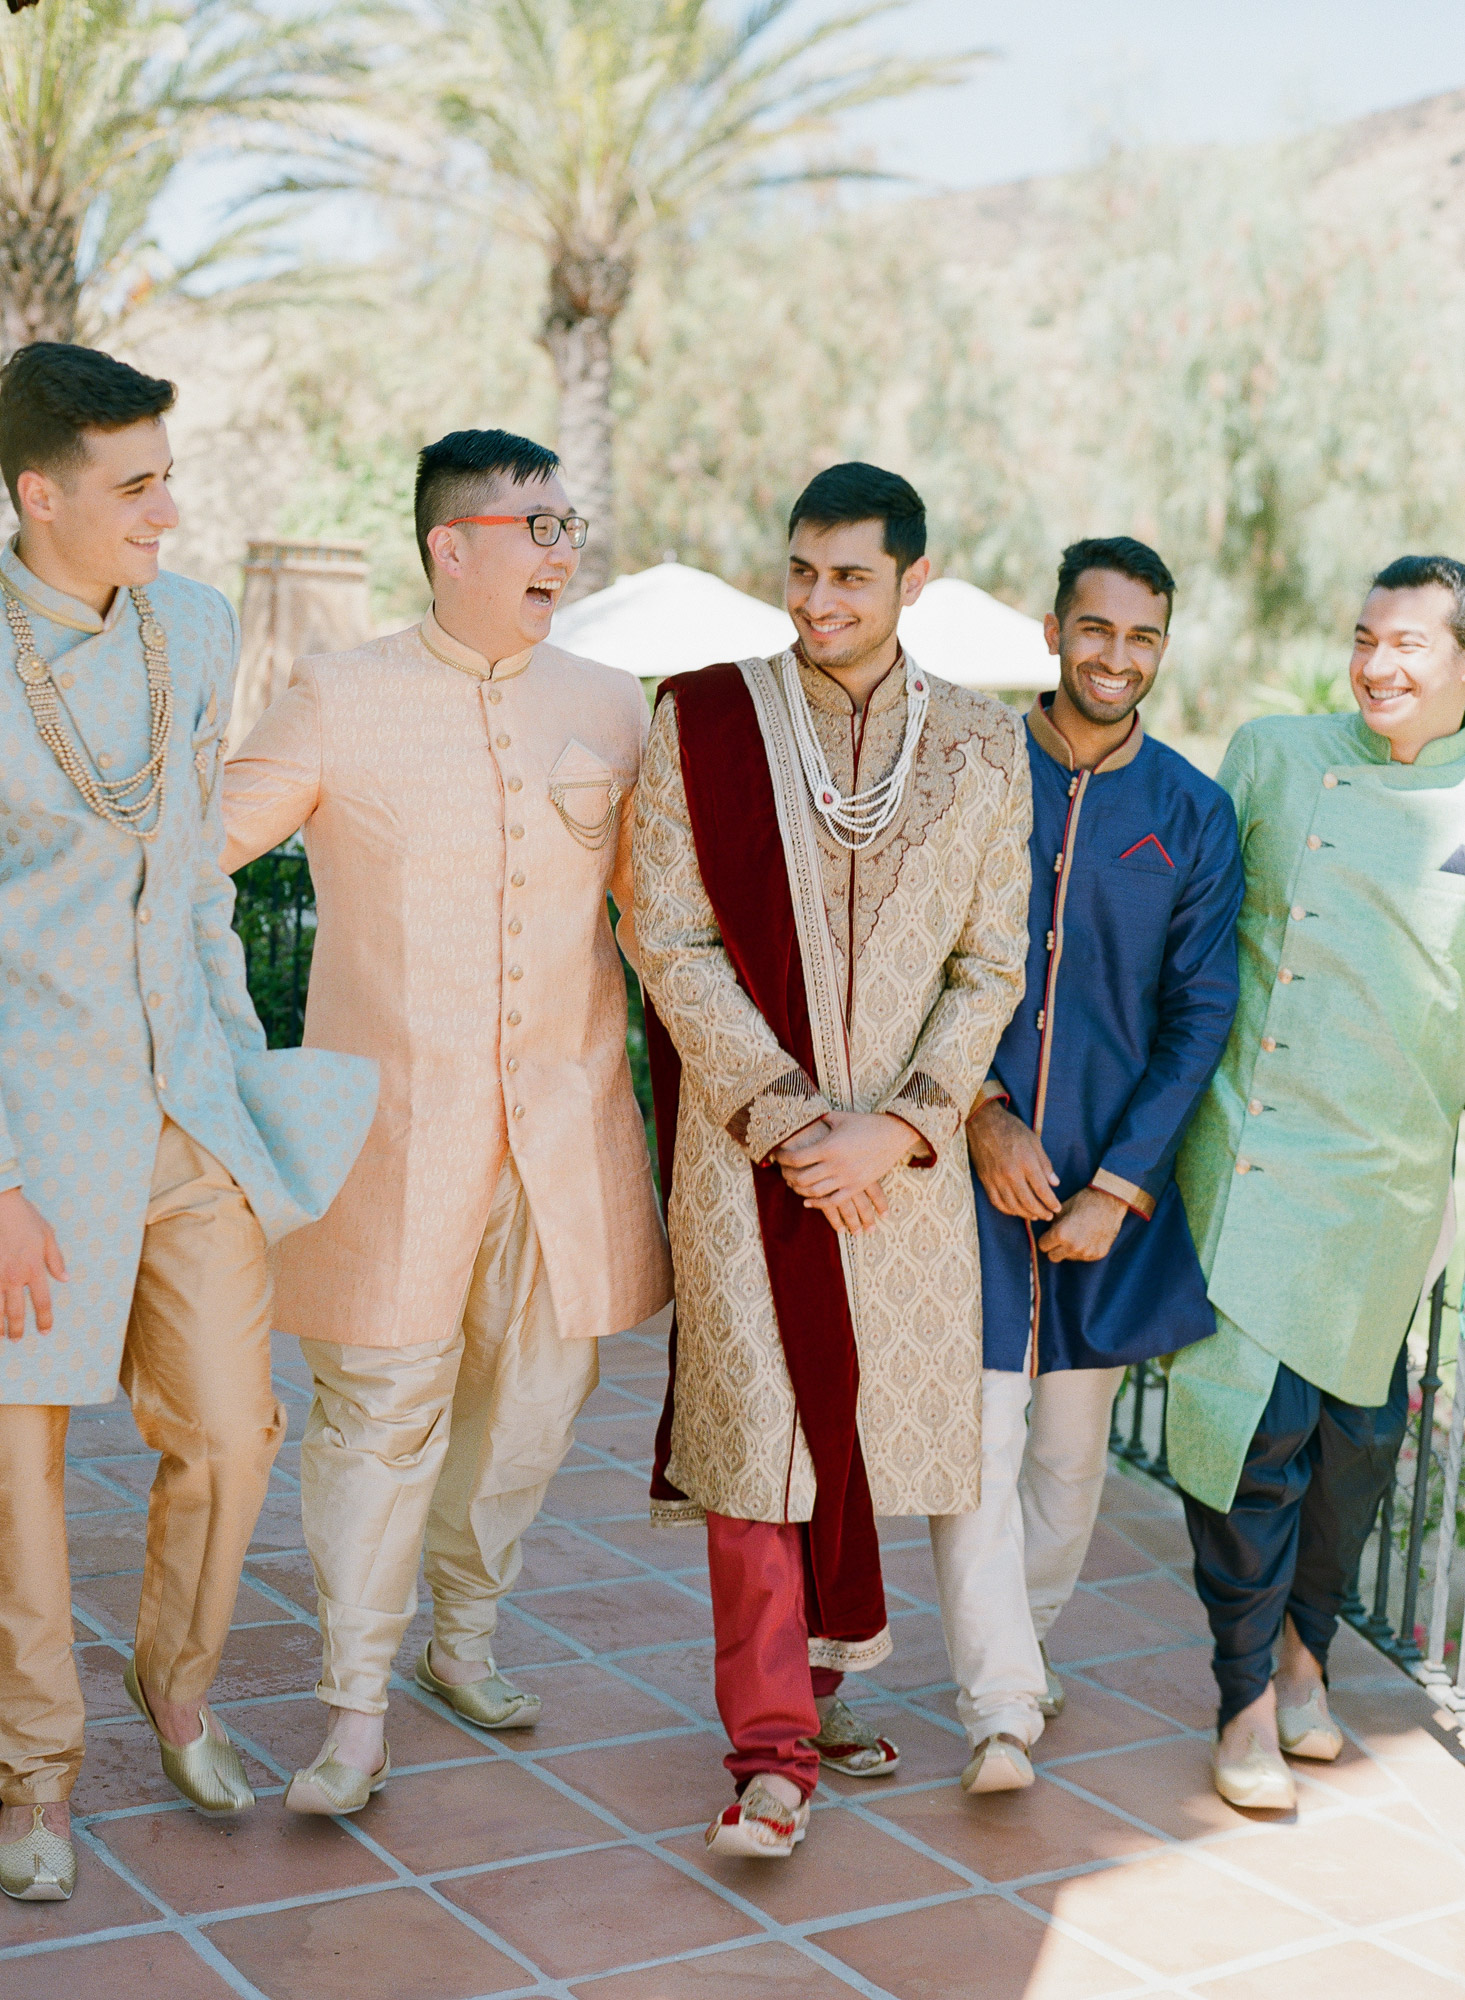 Aneesh with groomsmen during Indian ceremony